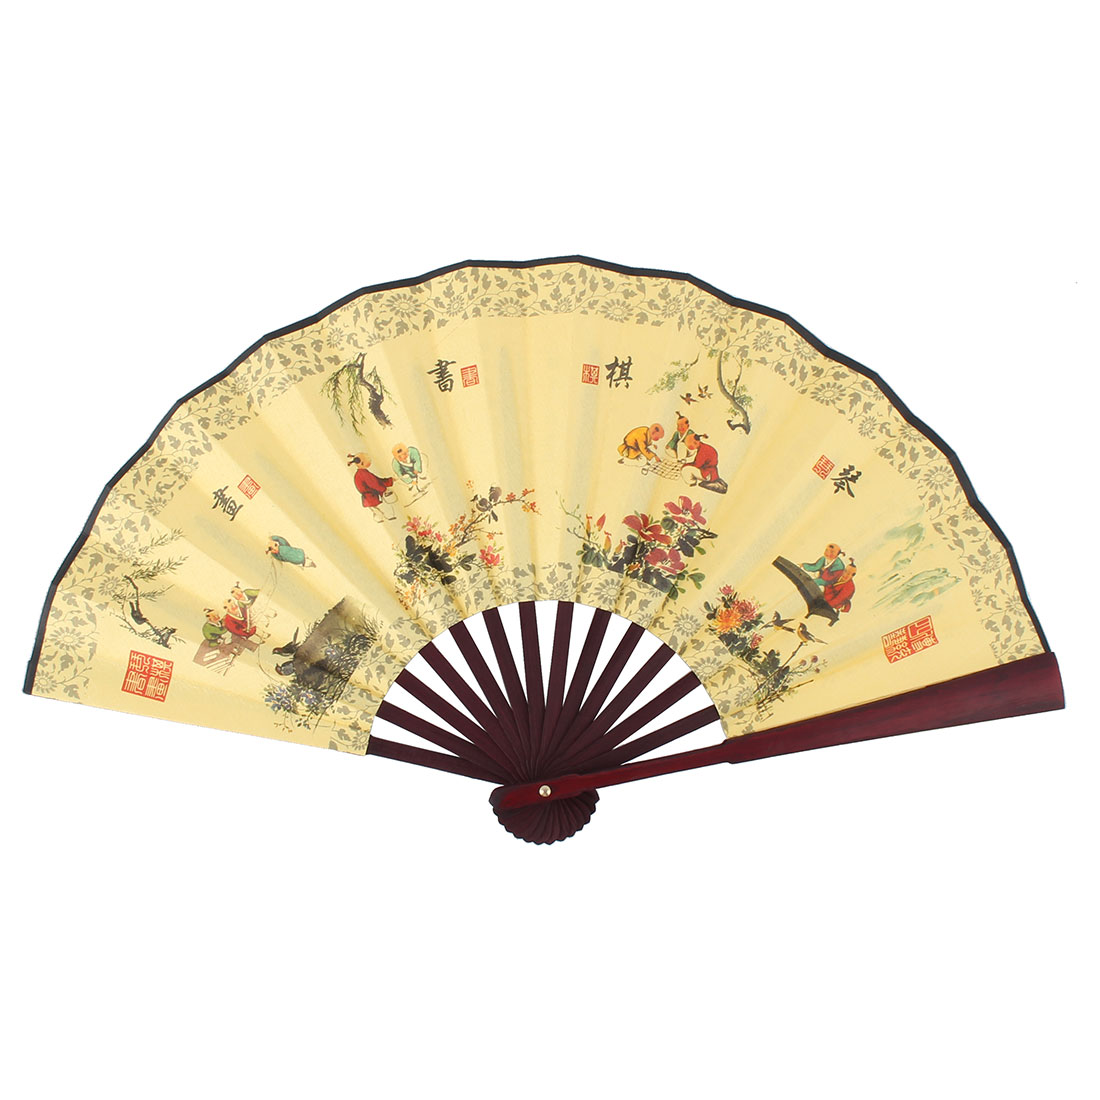 Wooden Frame Poetry Chinese Landscape Painting Straight Rod Handheld Folding Fan